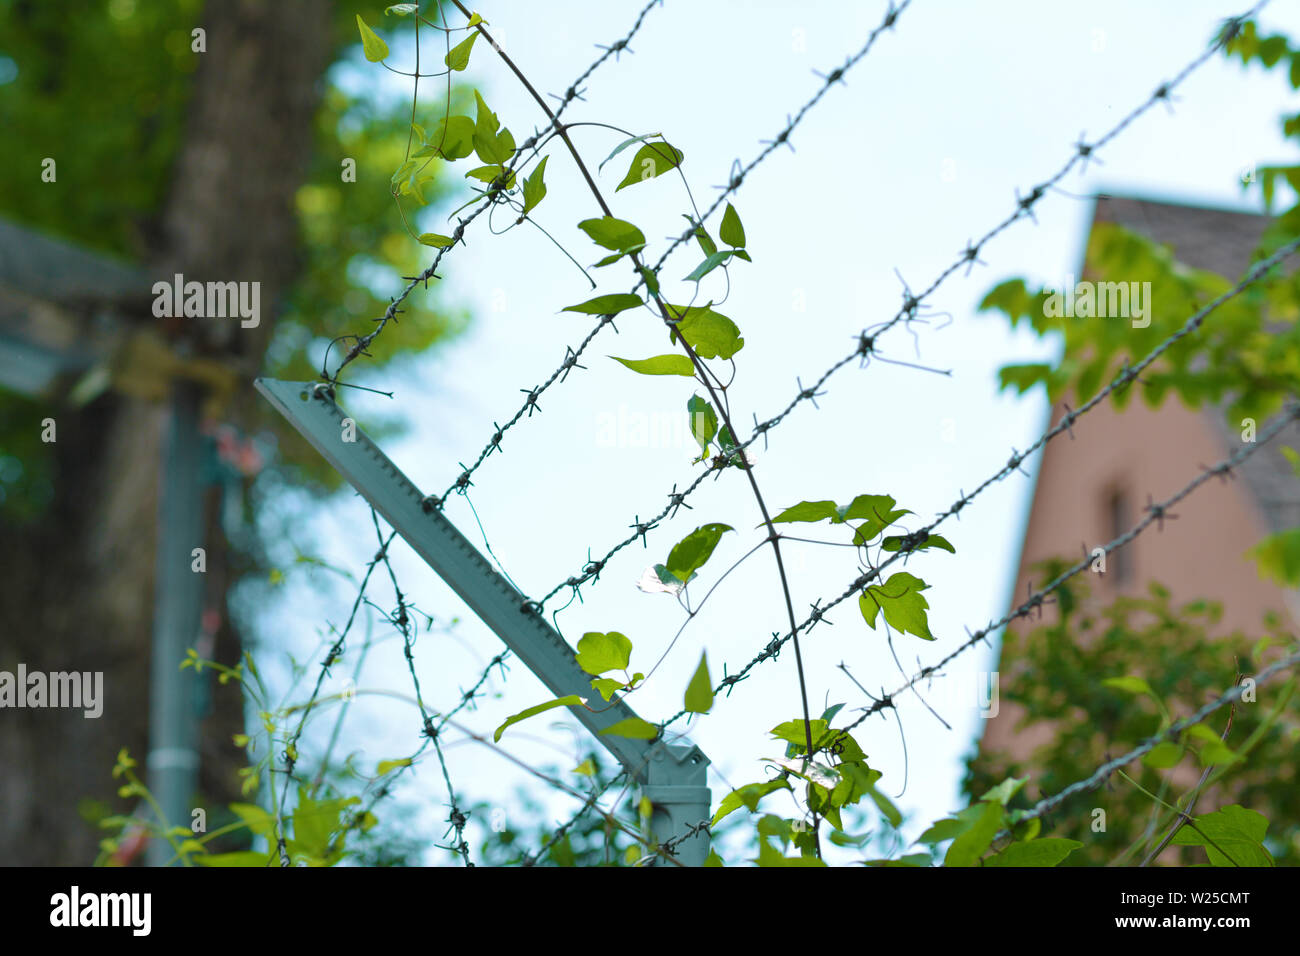 Overgrown barbed wire fence with blurry building in background Stock Photo